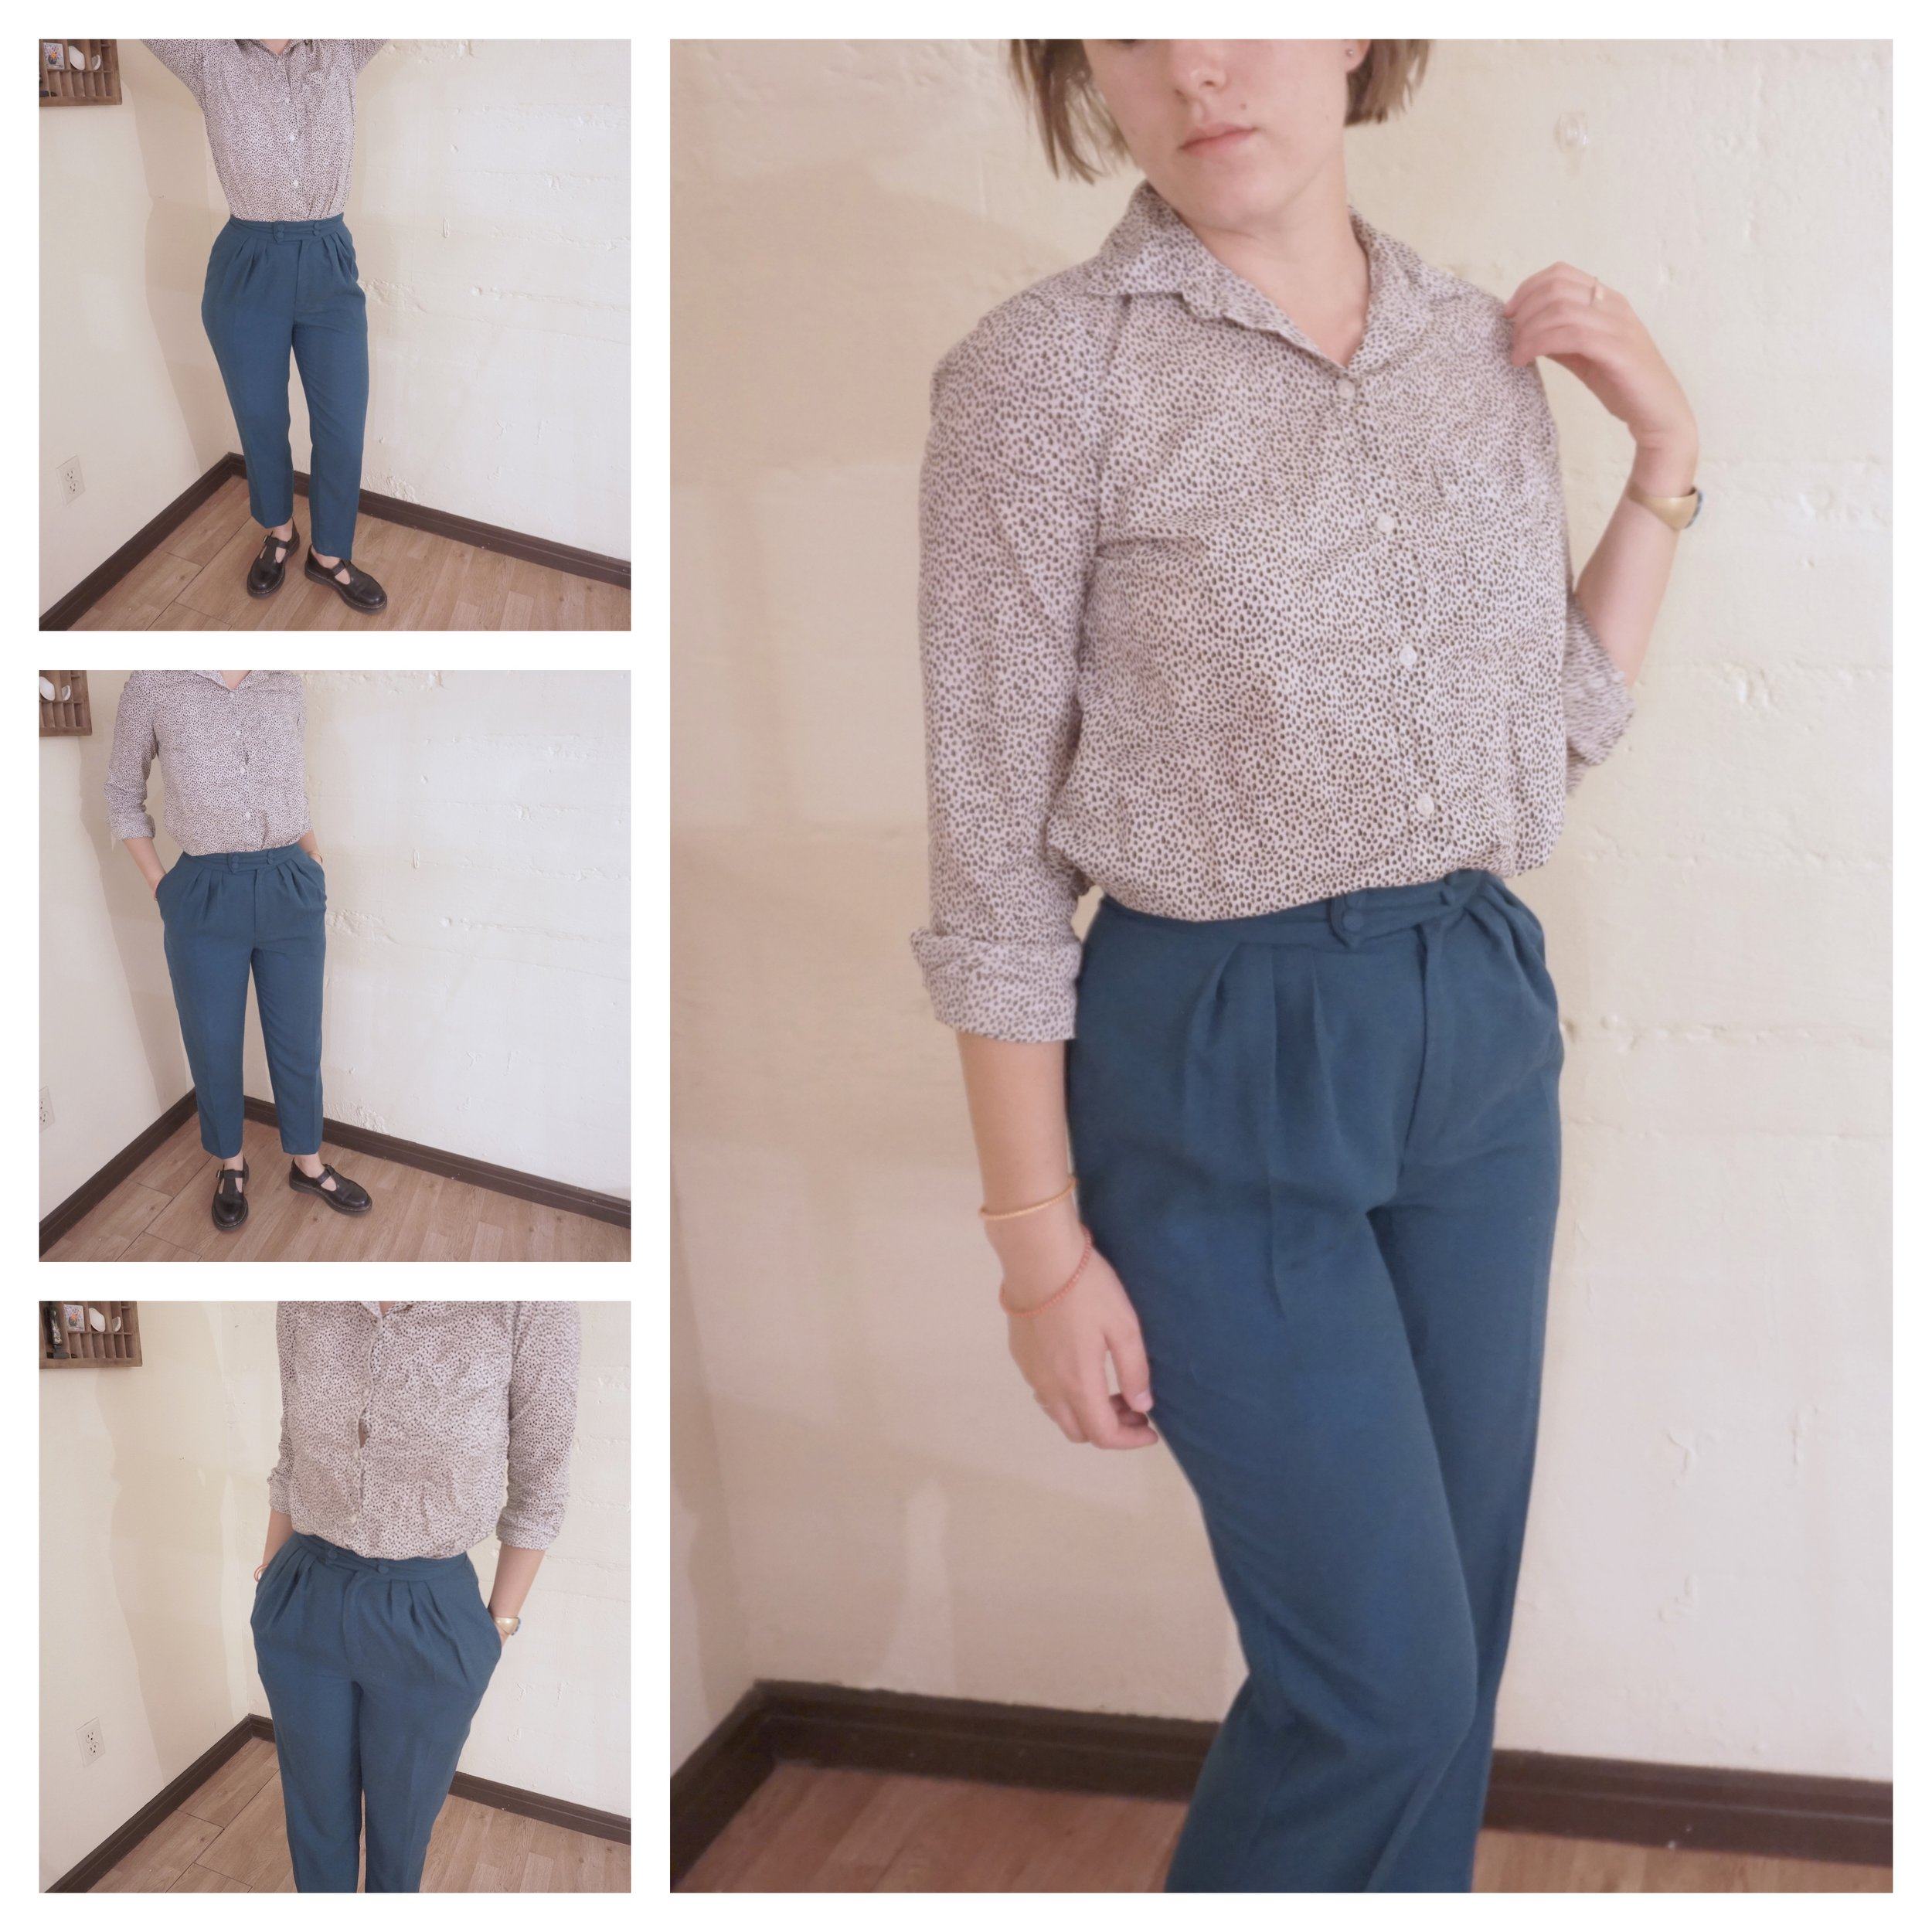 Minimalist Creative Wardrobe Challenge: I Made 5 New Outfits Without Buying Any New Clothes